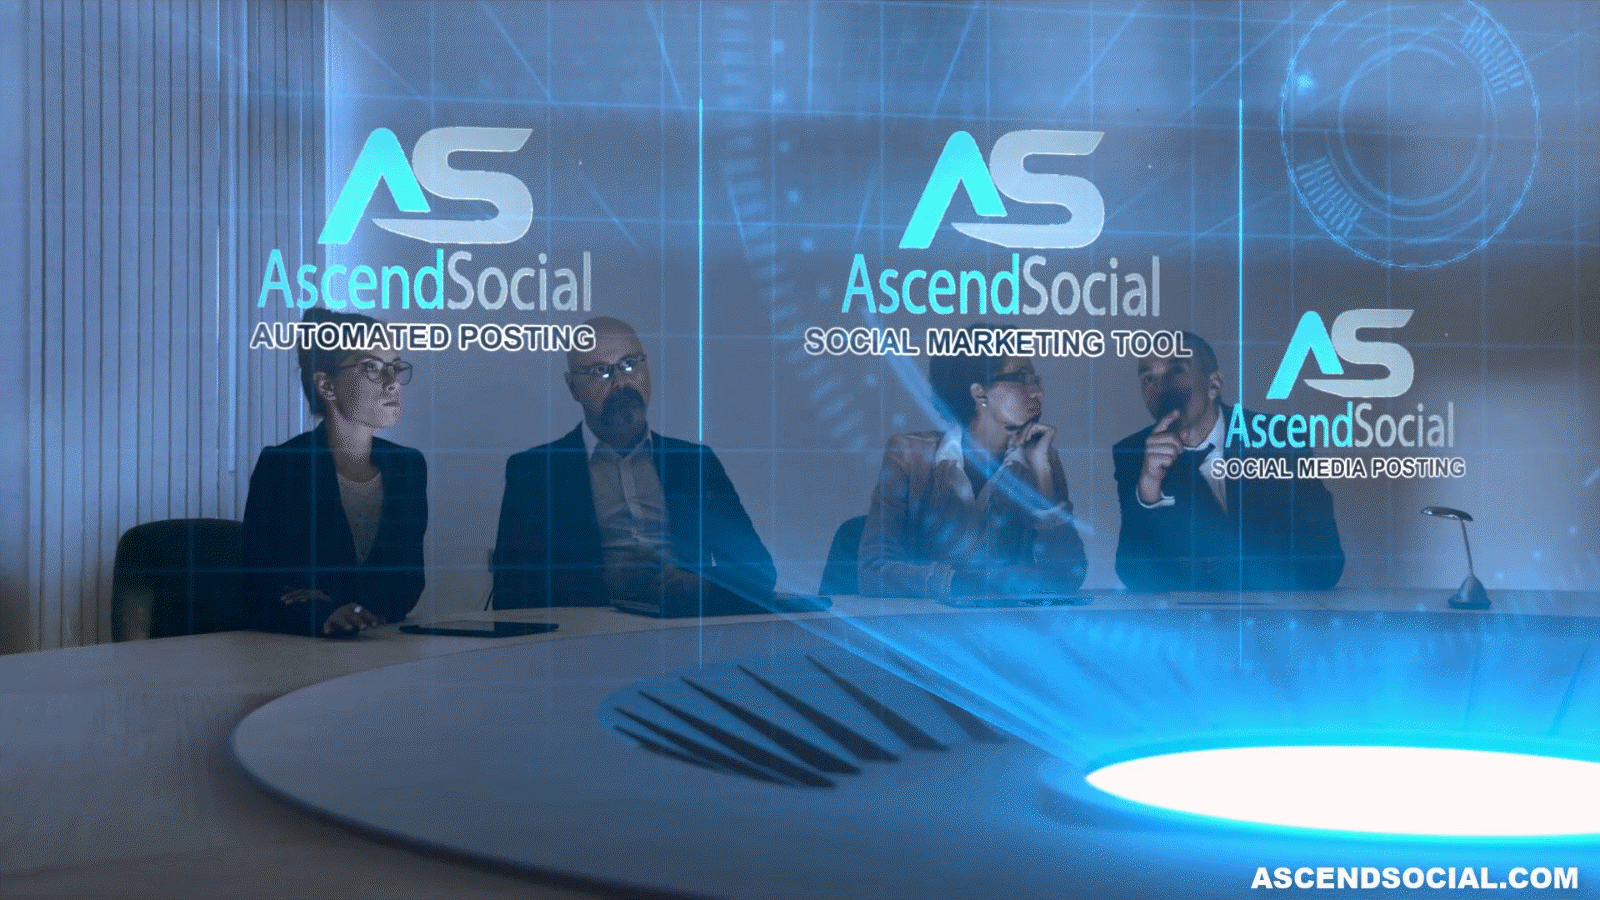 AscendSocial: FOr Social Media Marketing